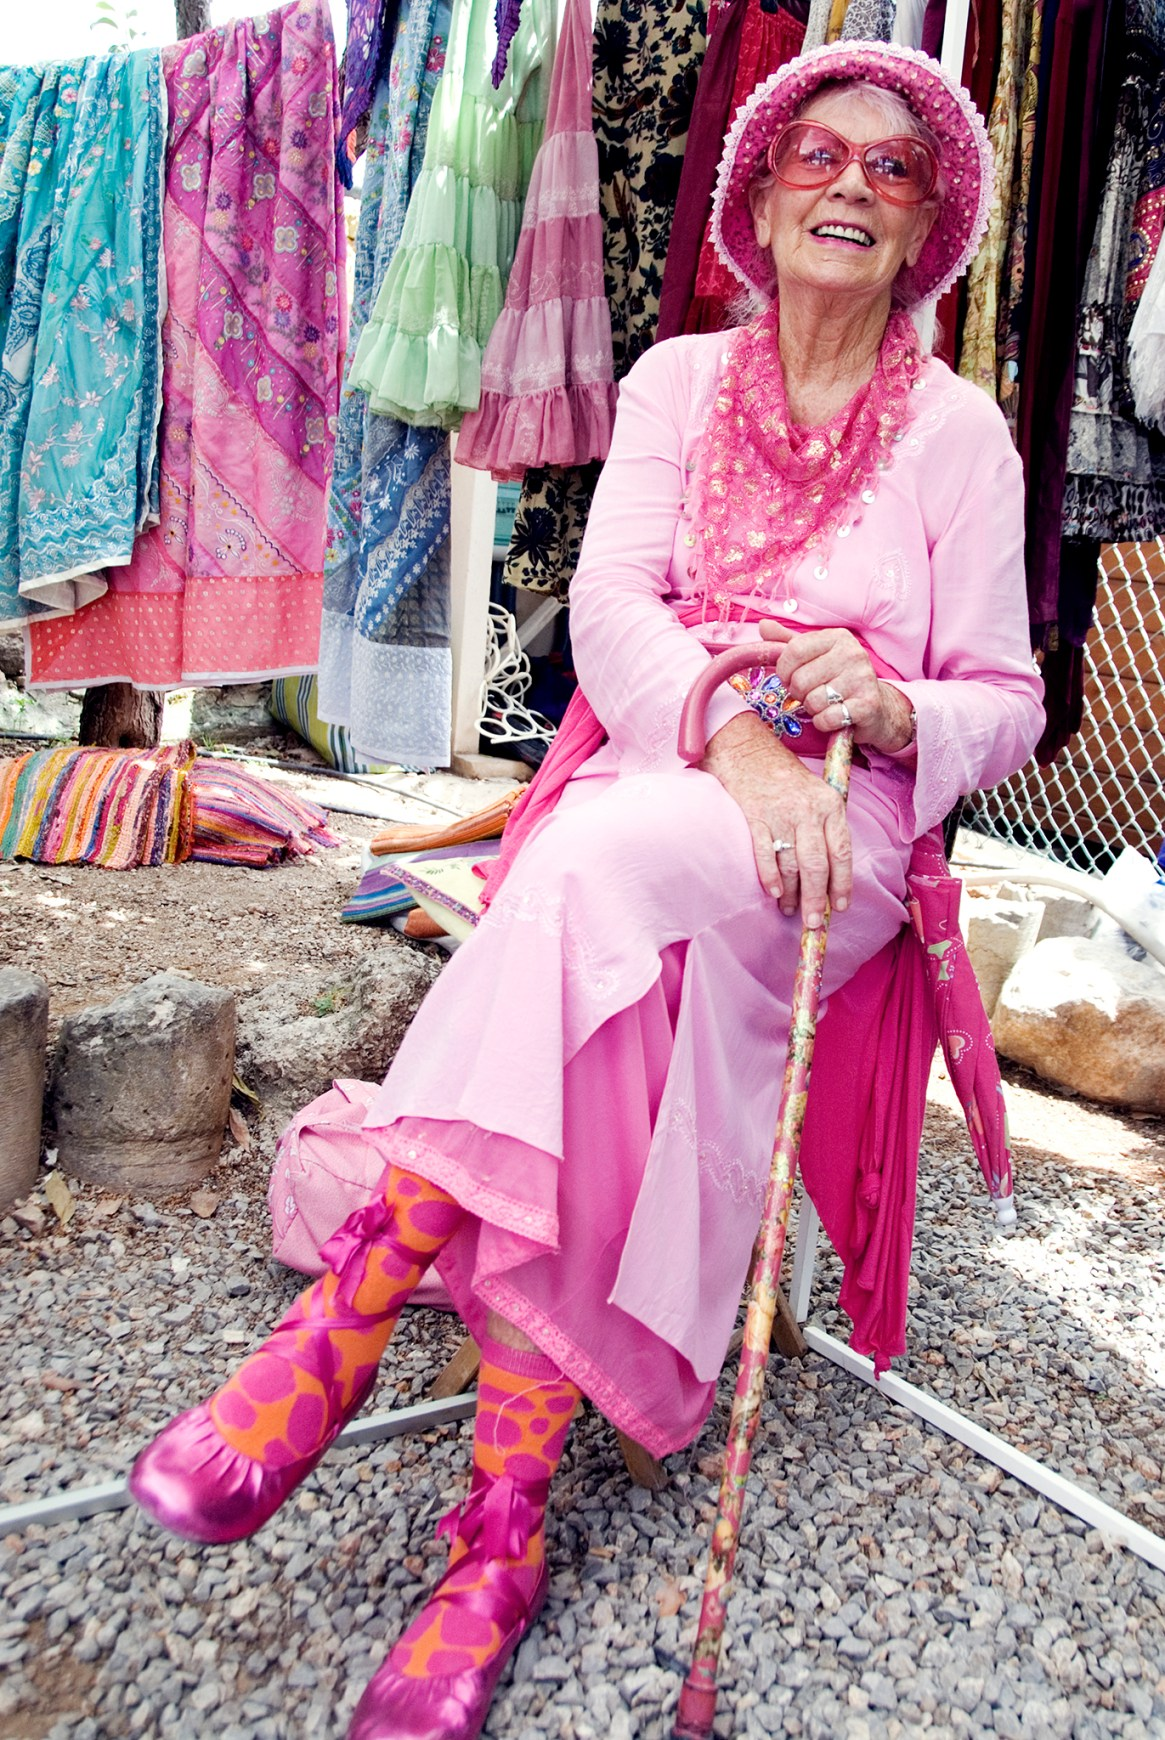 Busker Maryanne Kerr - dressed in pink - relaxes at the hippy market in Ibiza